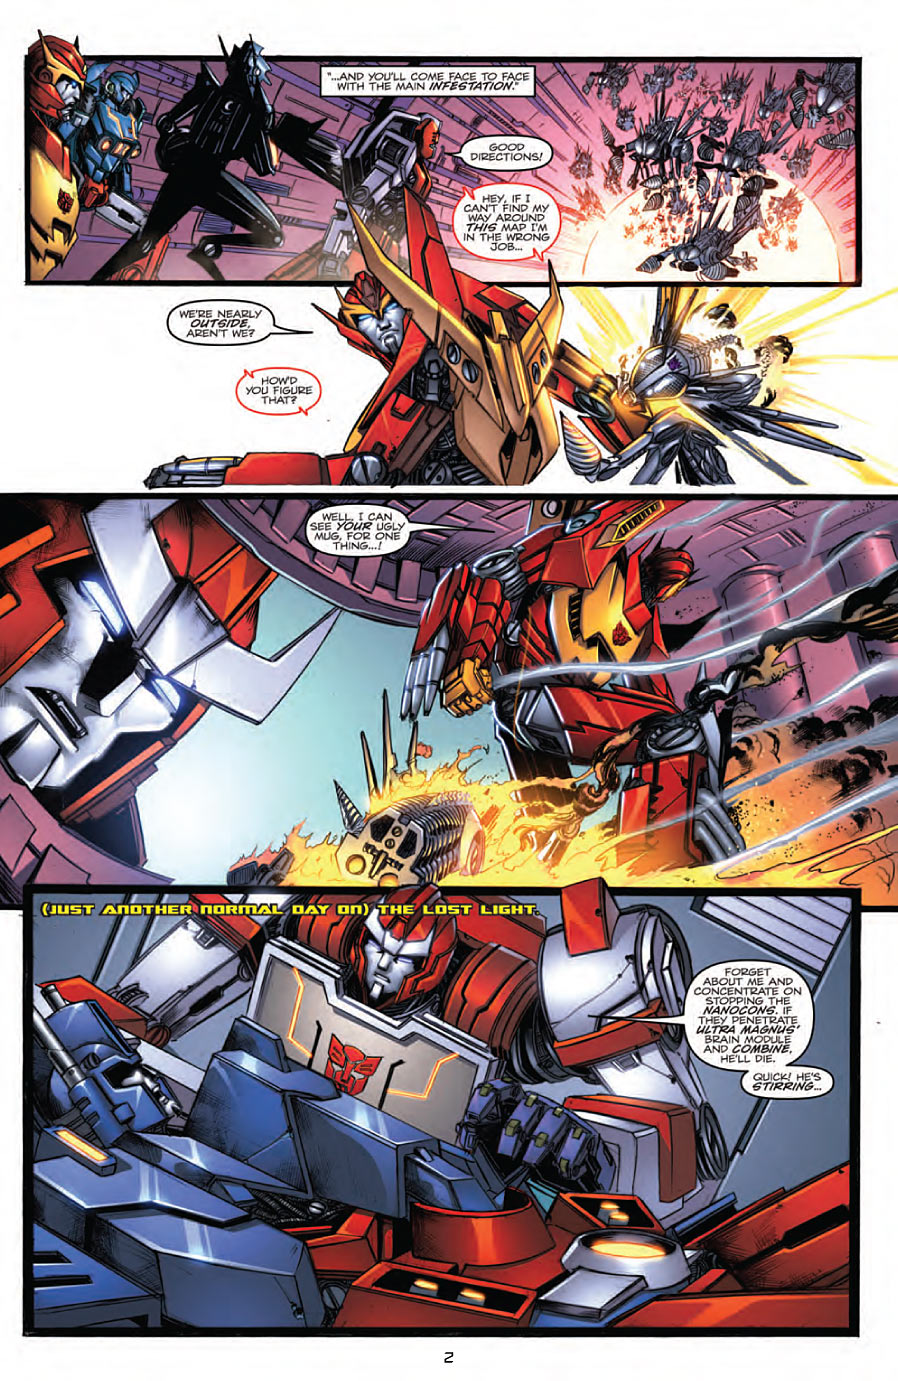 transformers-comics-more-than-meets-the-eye-annual-2012-page-2 Transformers More Than Meets the Eye Annual 2012